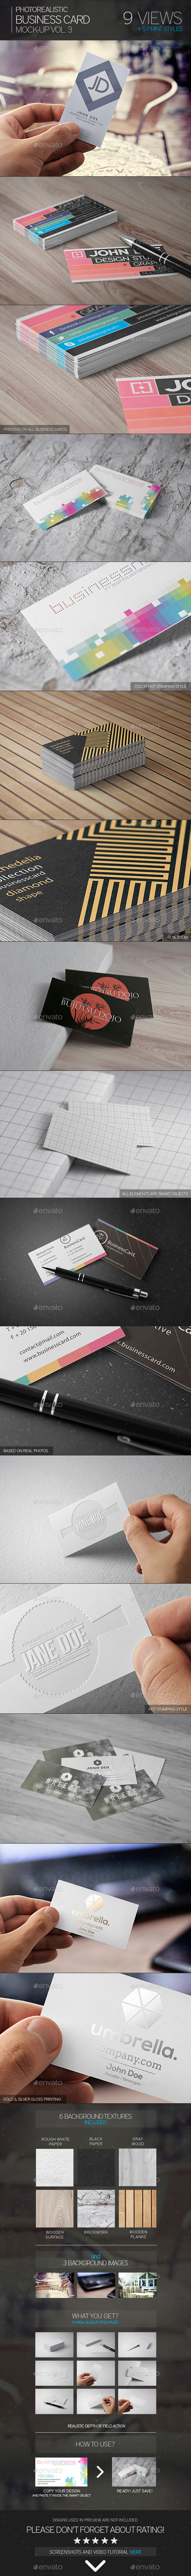 Photorealistic Business Card Mock-Up Vol.3